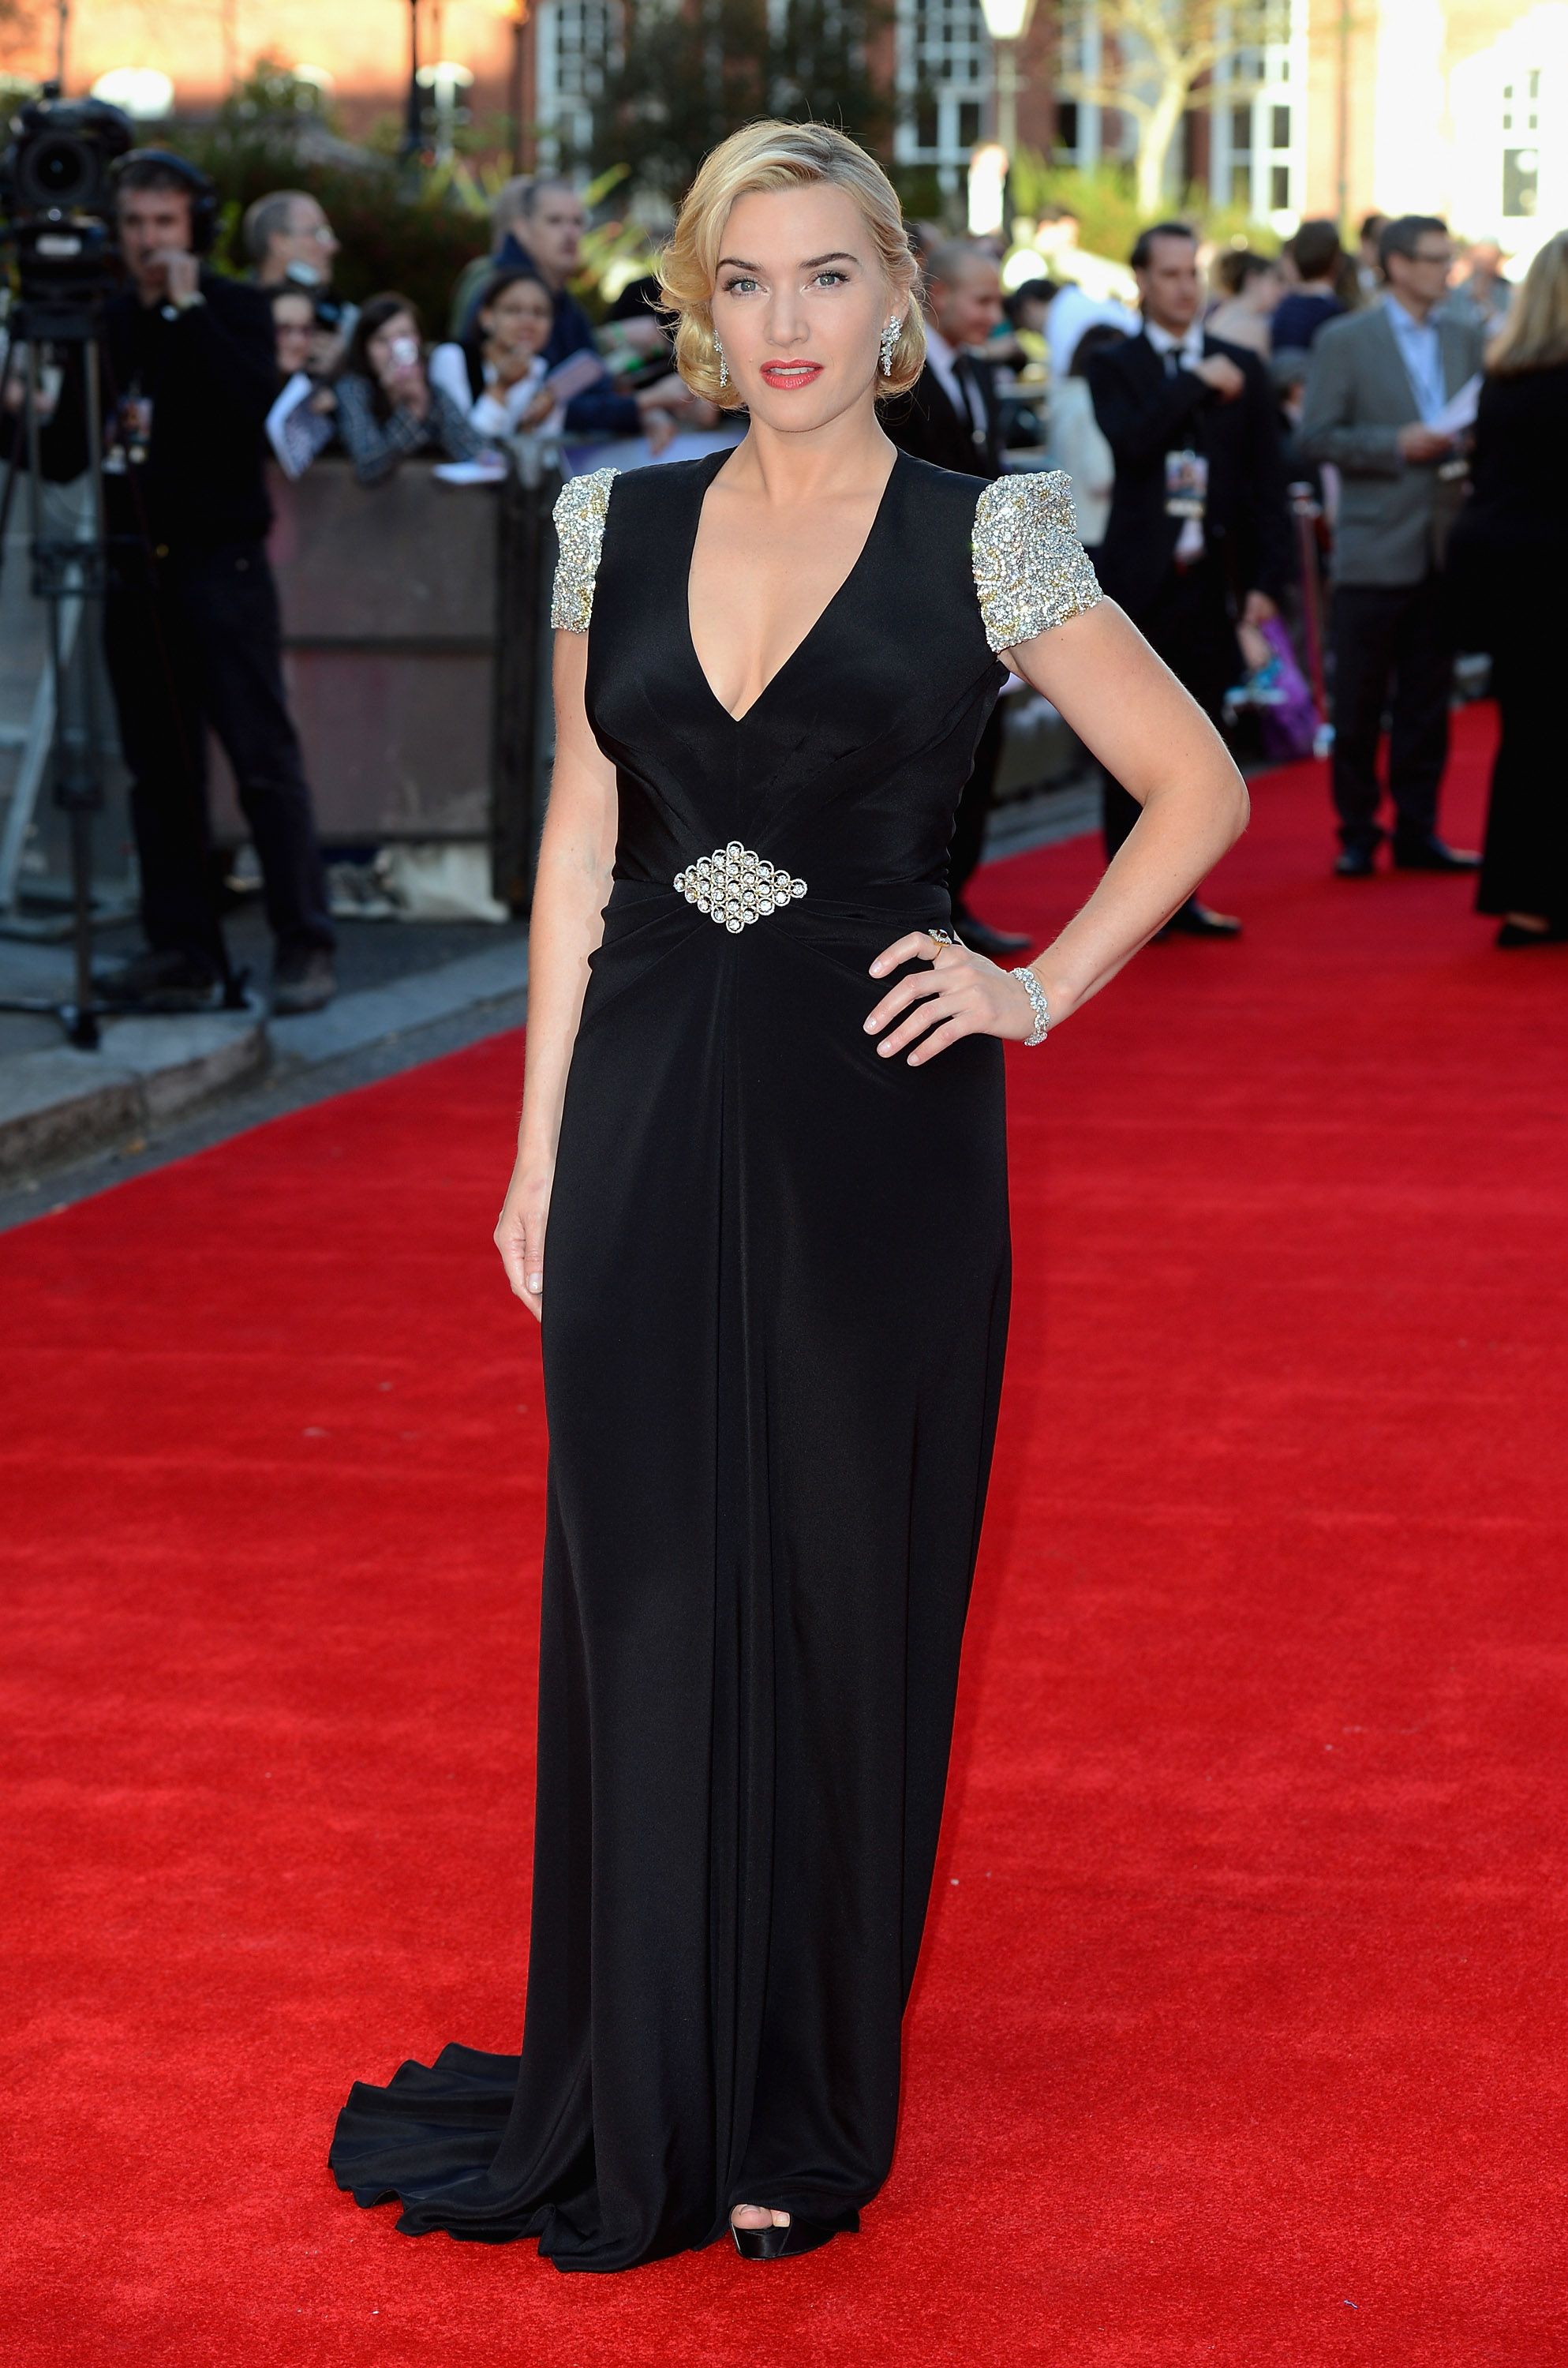 Kate Winslet dazzled in a black v-neck dress at the ...